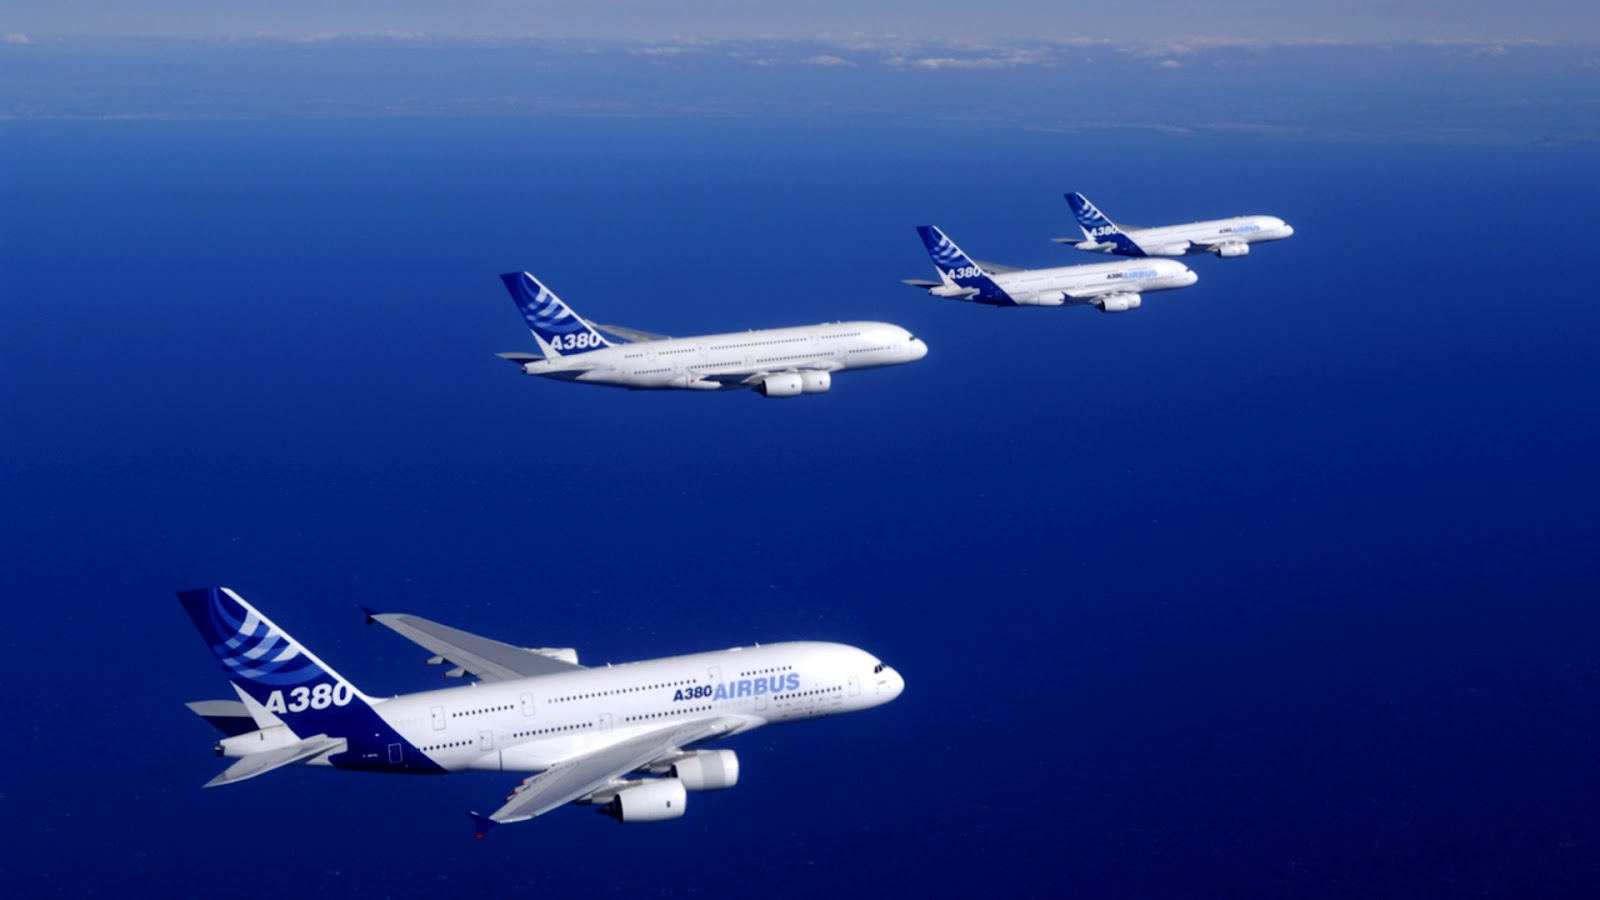 Airbus A380 Planes on Ocean HD Wallpaper 1600x900